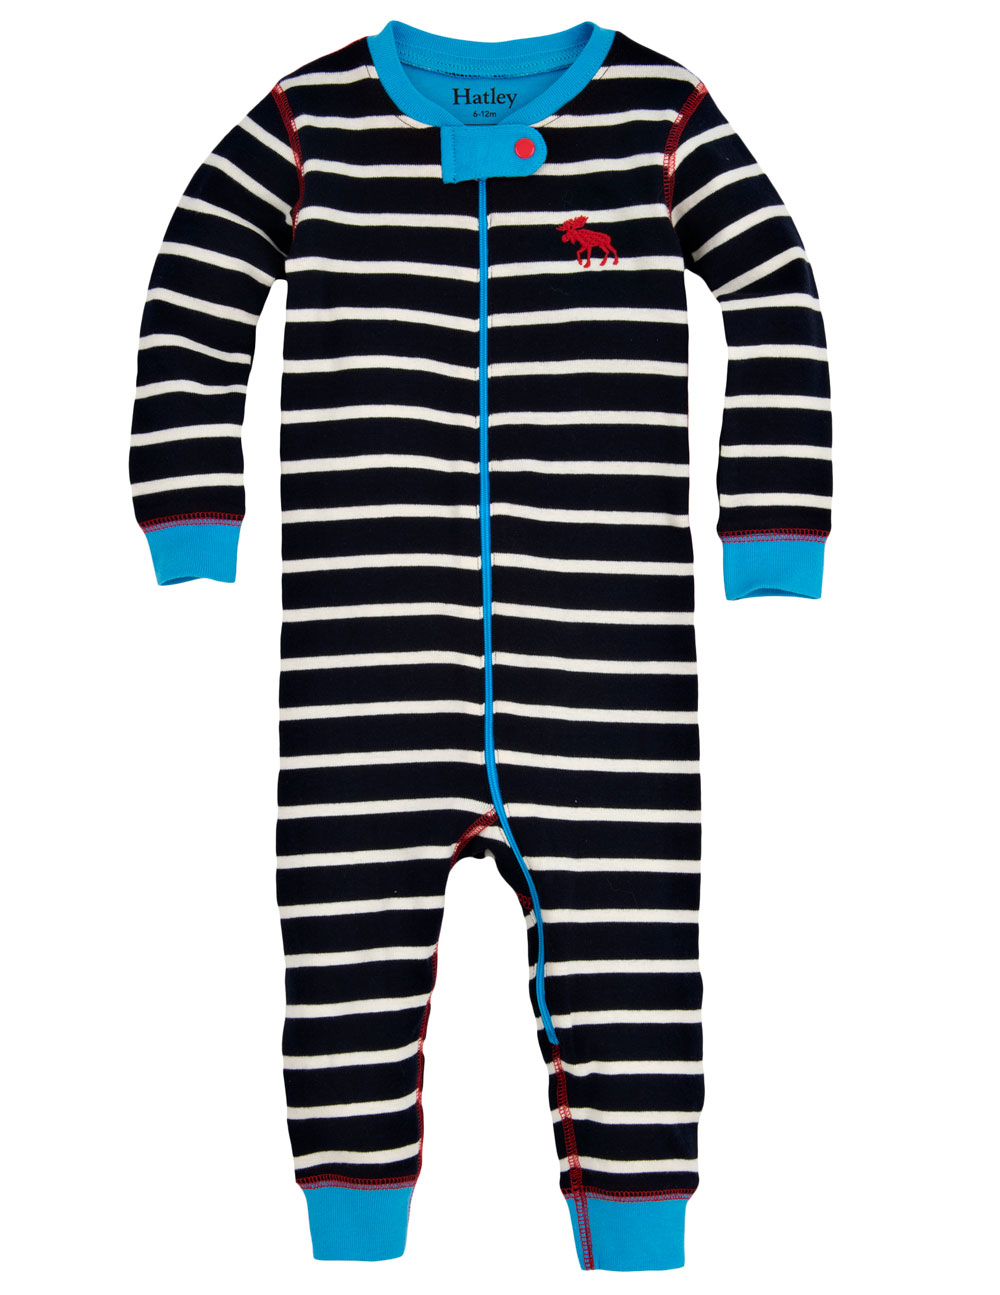 Hatley Babygro - Navy Stripe - Footless